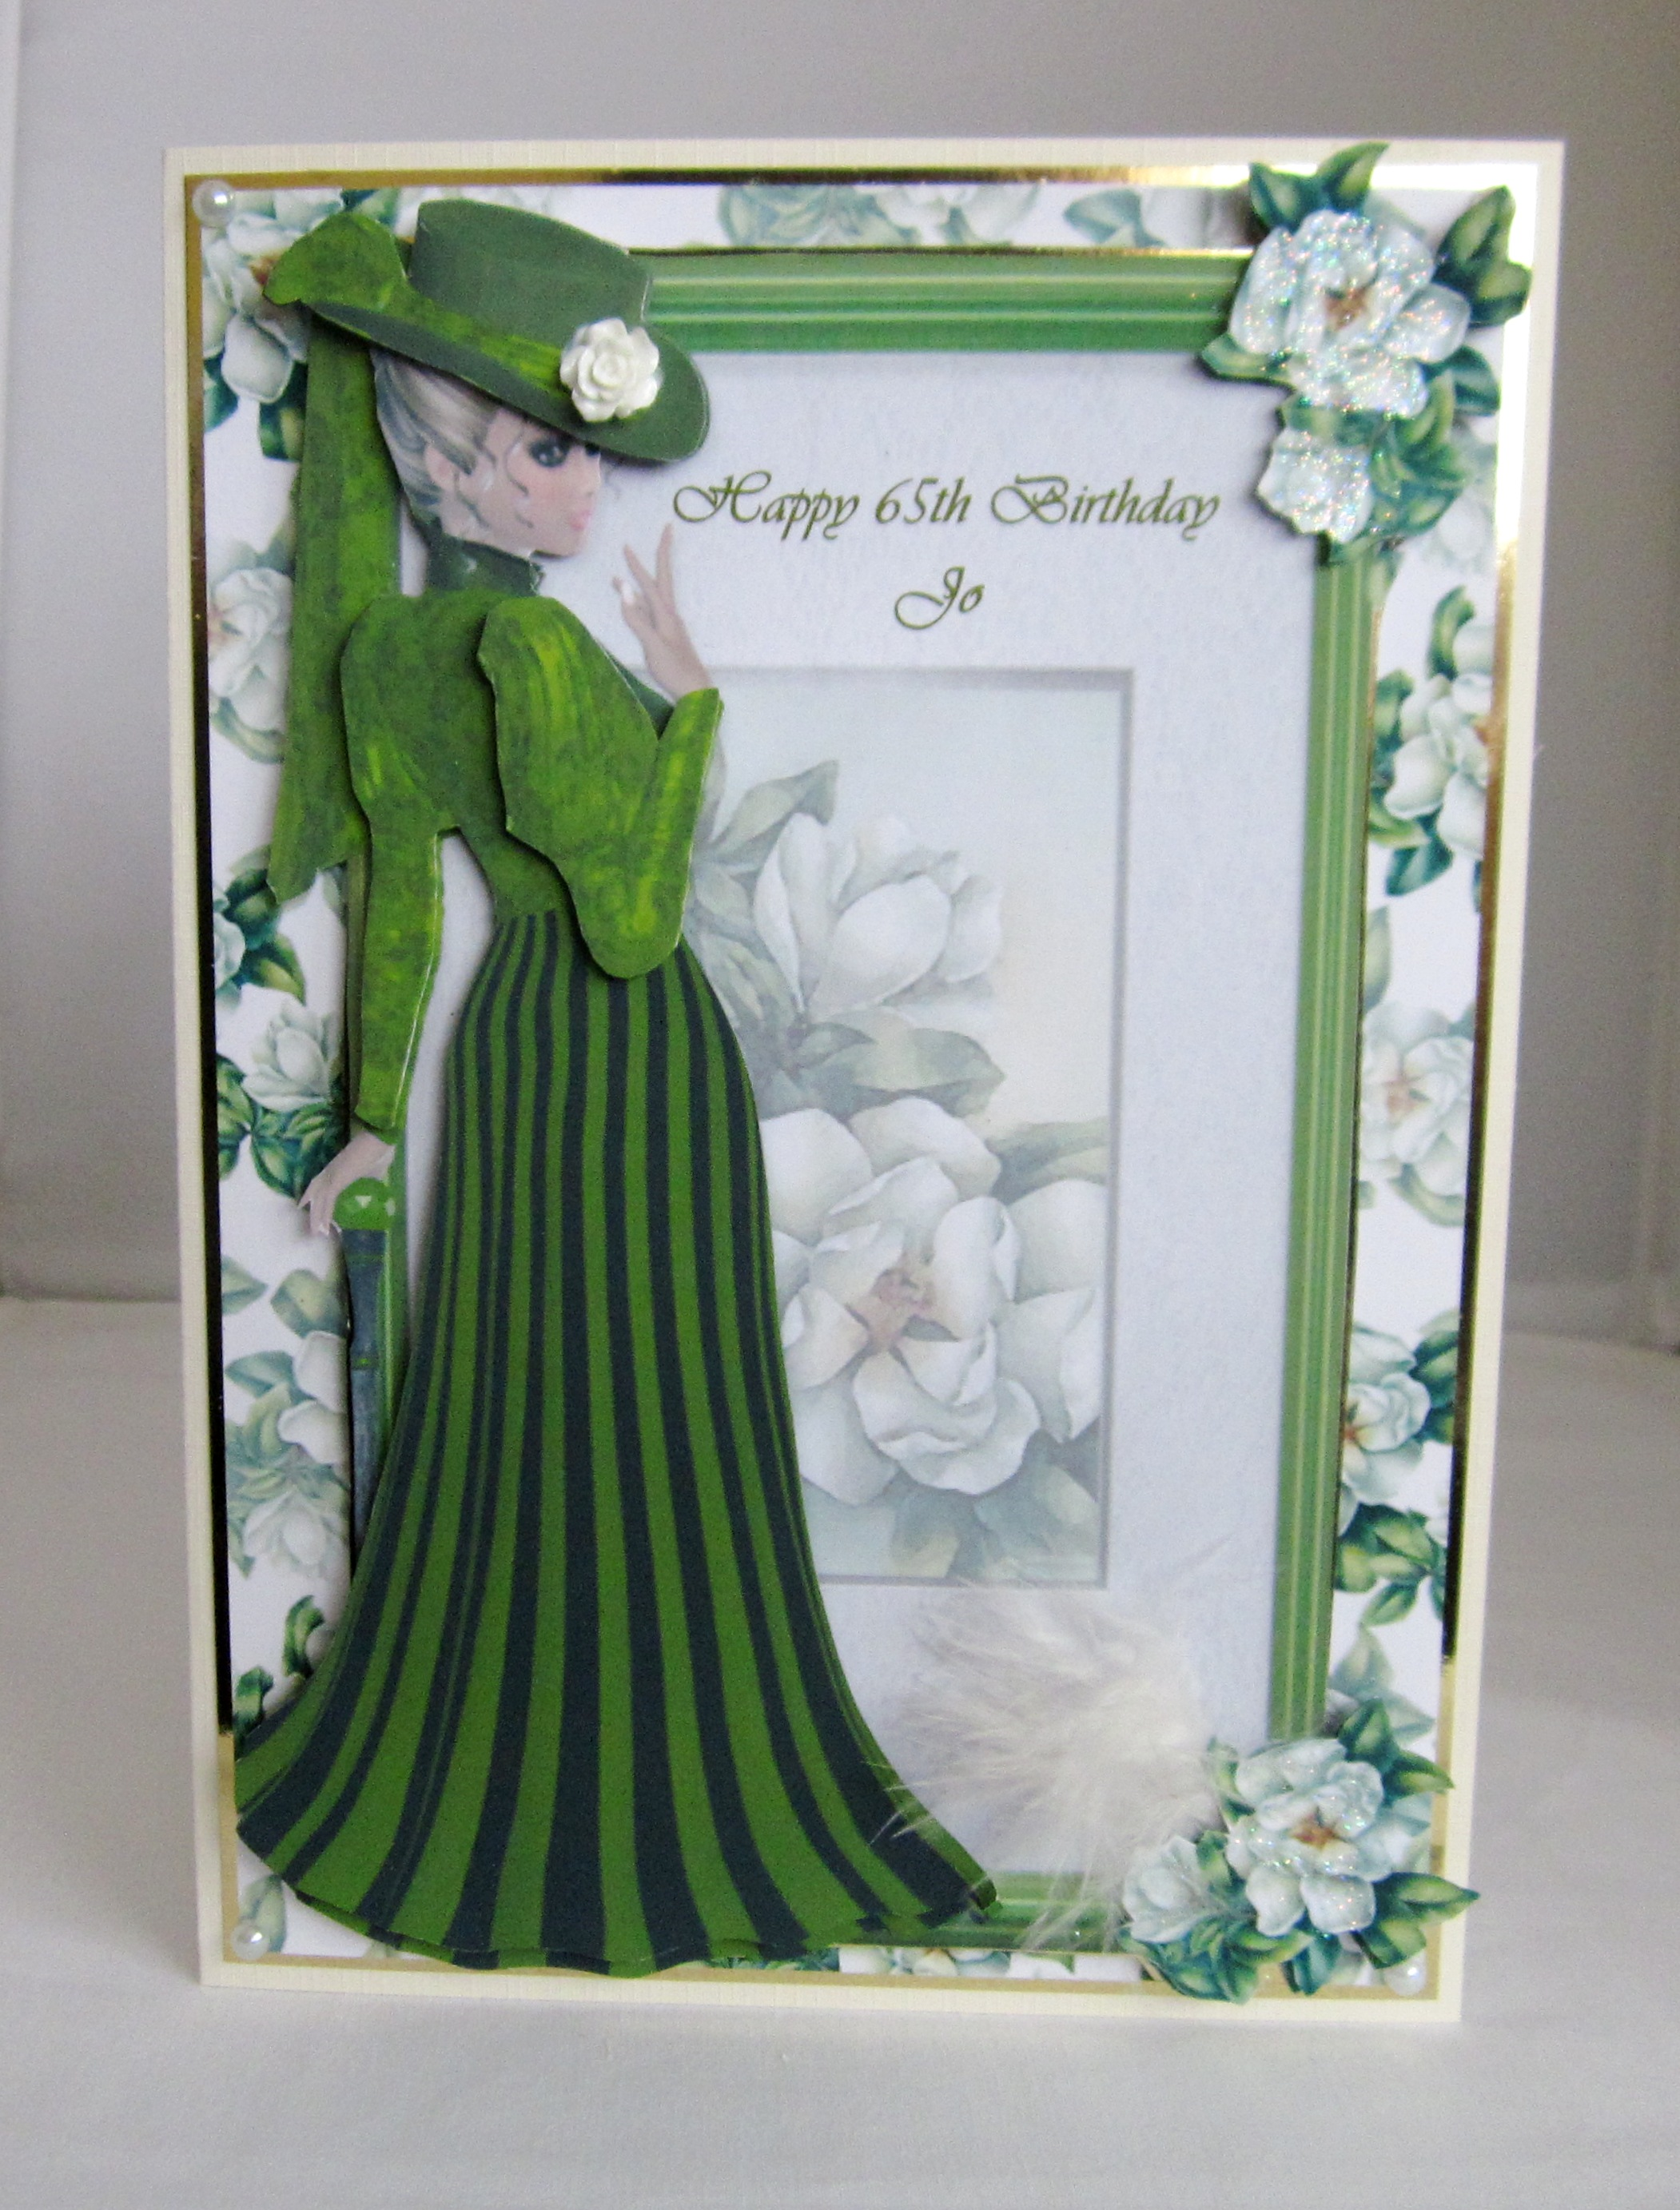 Elegant green lady Birthday card(layered) - Handmade cards: bespokecards4u.weebly.com/store/p42/elegant_green_lady_birthday...